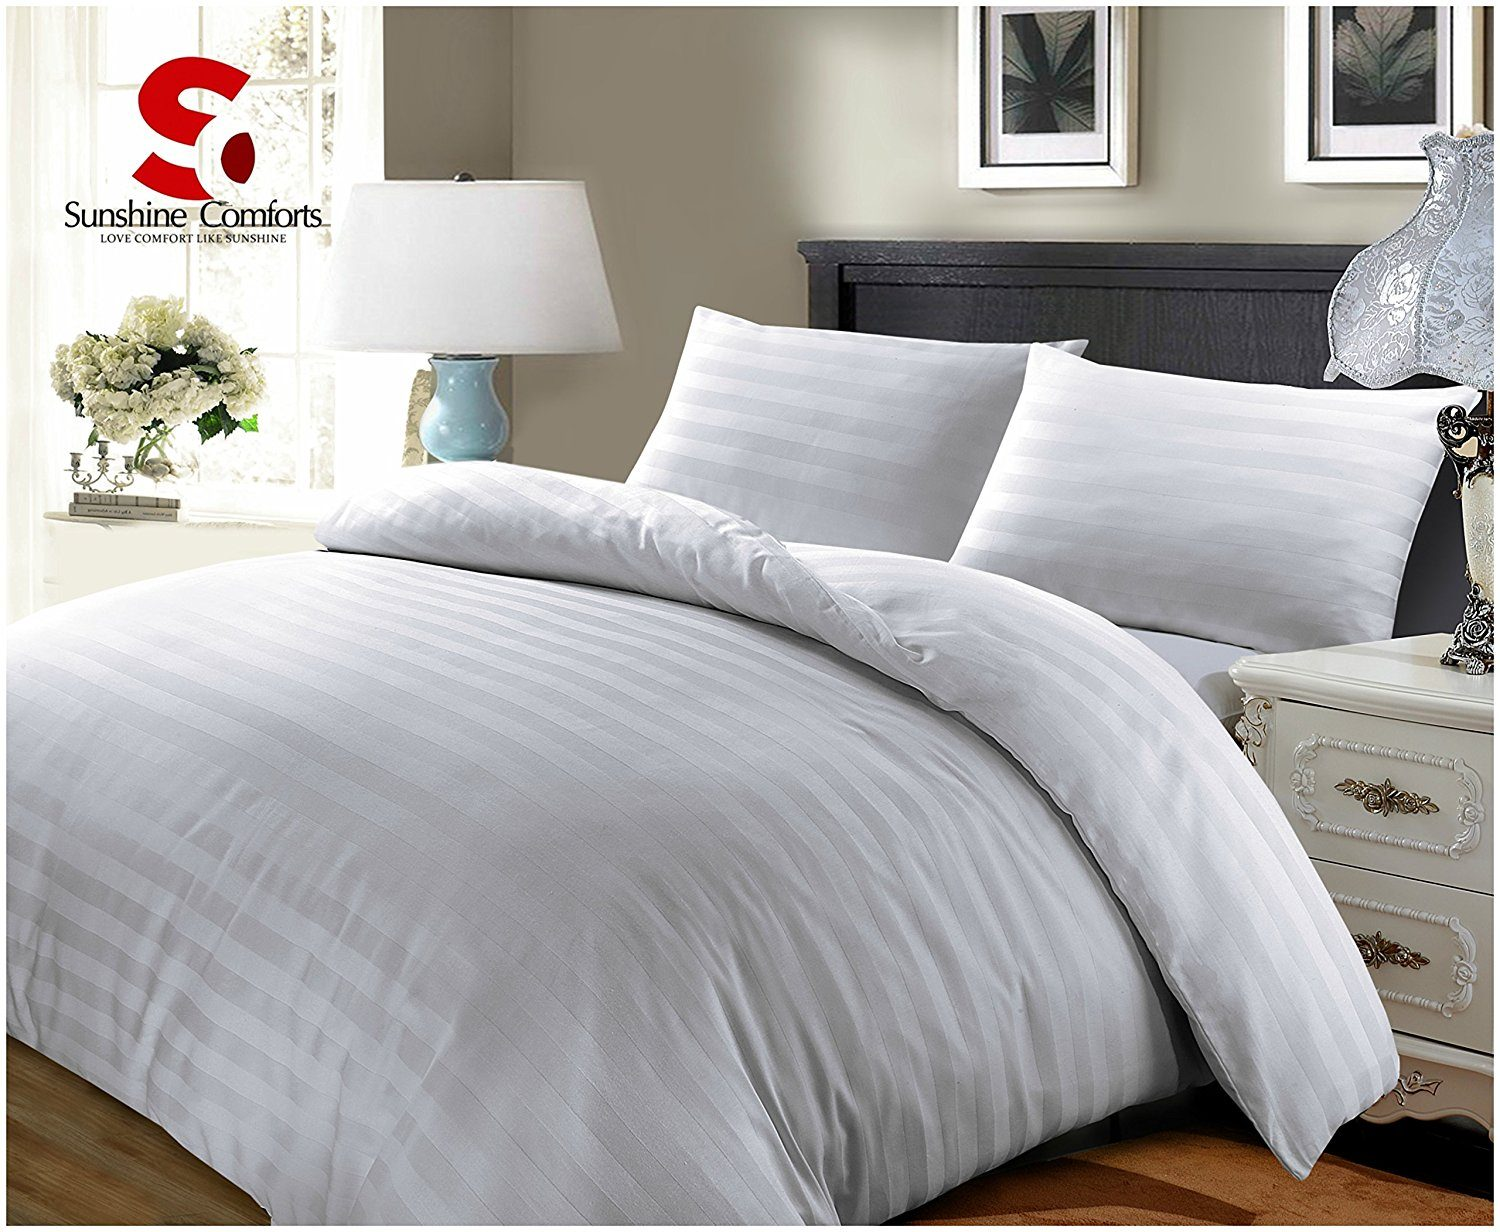 100%LUXURY HOTEL QUALITY EGYPTIAN COTTON SATIN STRIPE DUVET COVER SET